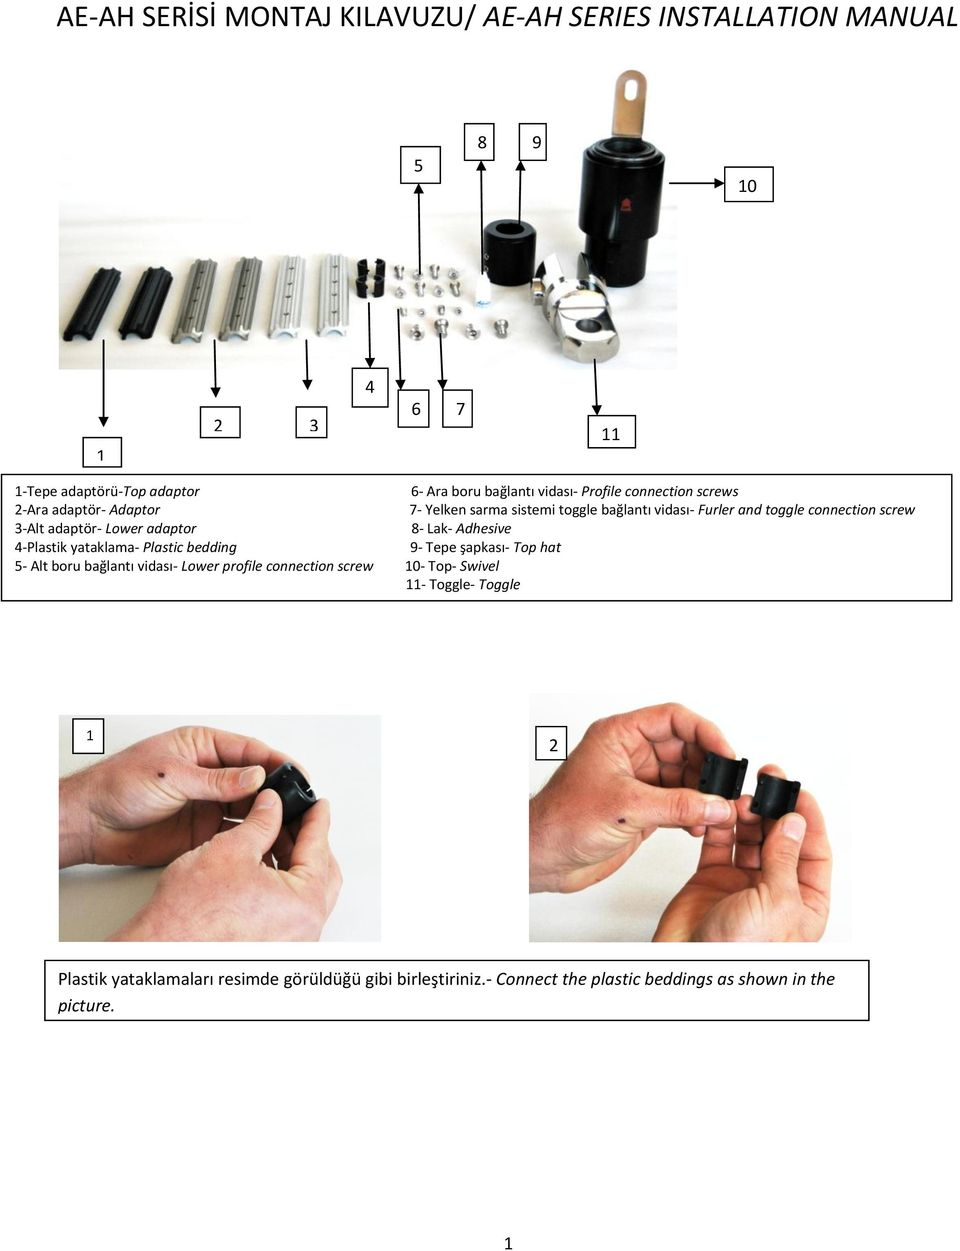 Lower adaptor 8- Lak- Adhesive 4-Plastik yataklama- Plastic bedding 9- Tepe şapkası- Top hat 5- Alt boru bağlantı vidası- Lower profile connection